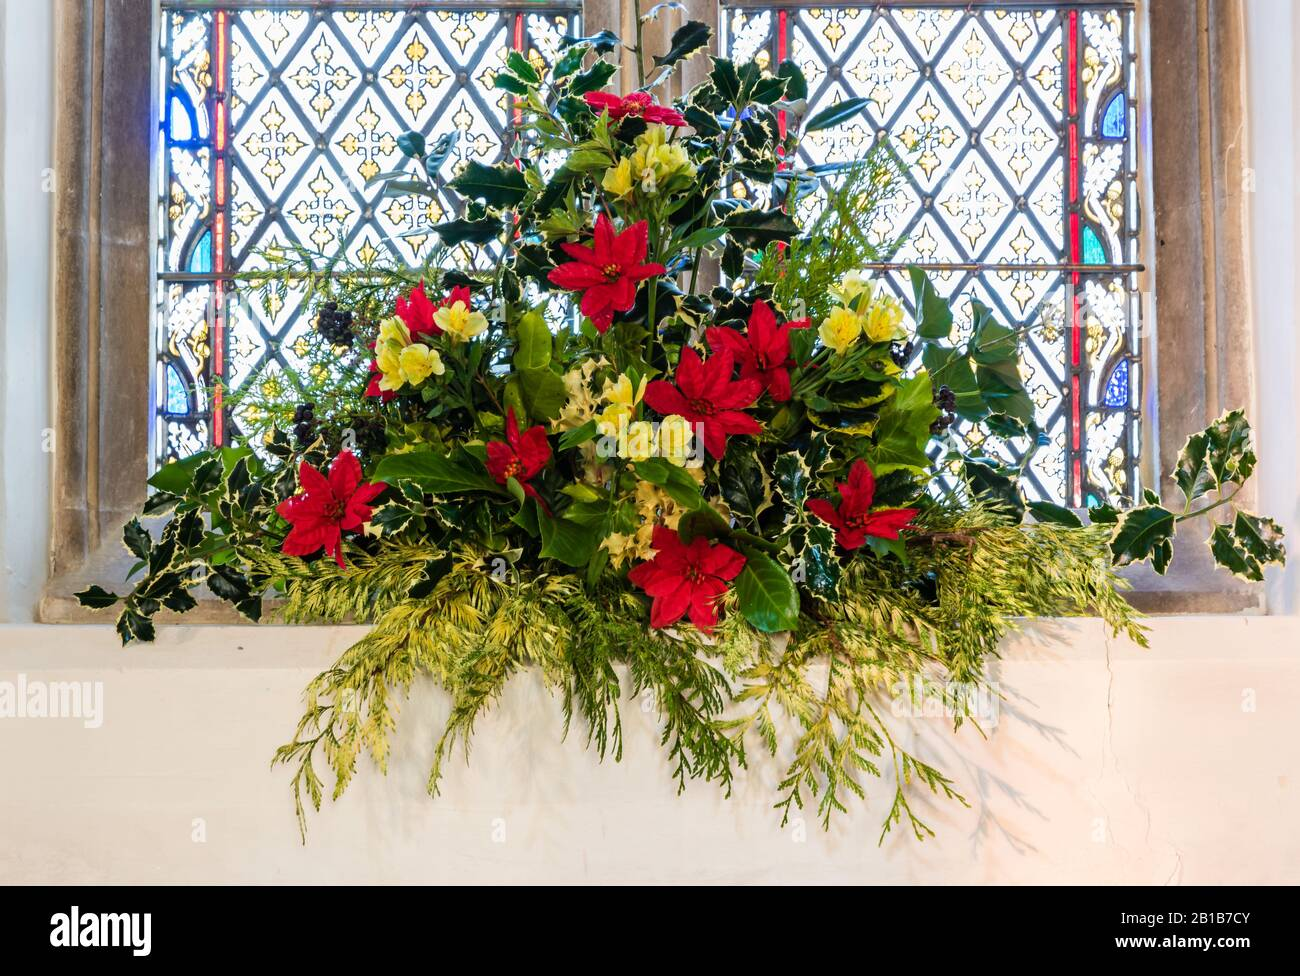 Christmas Flowers Church High Resolution Stock Photography And Images Alamy